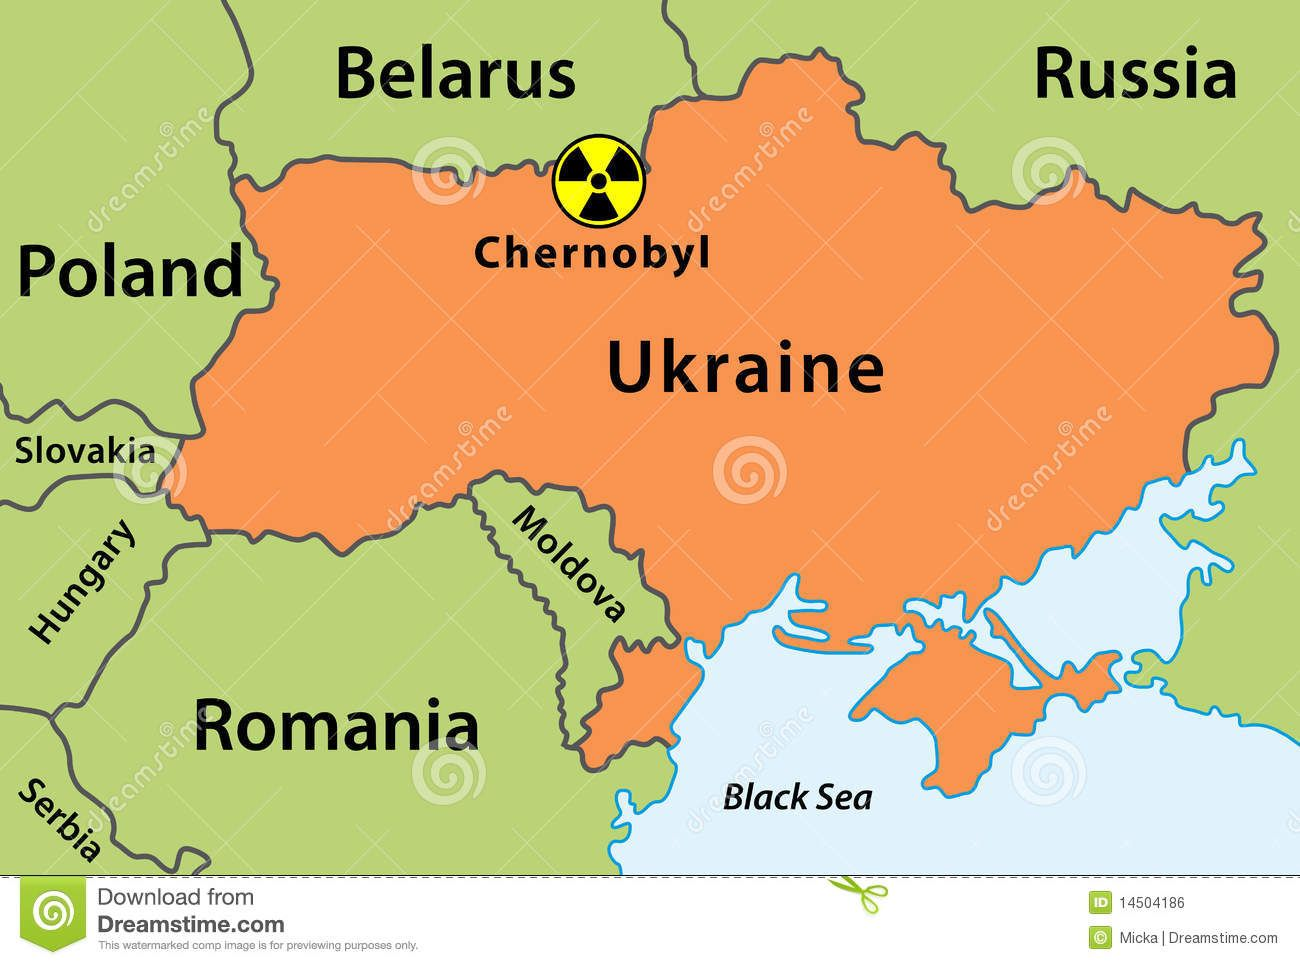 The town of Chernobyl is in Ukraine and situated near borders with